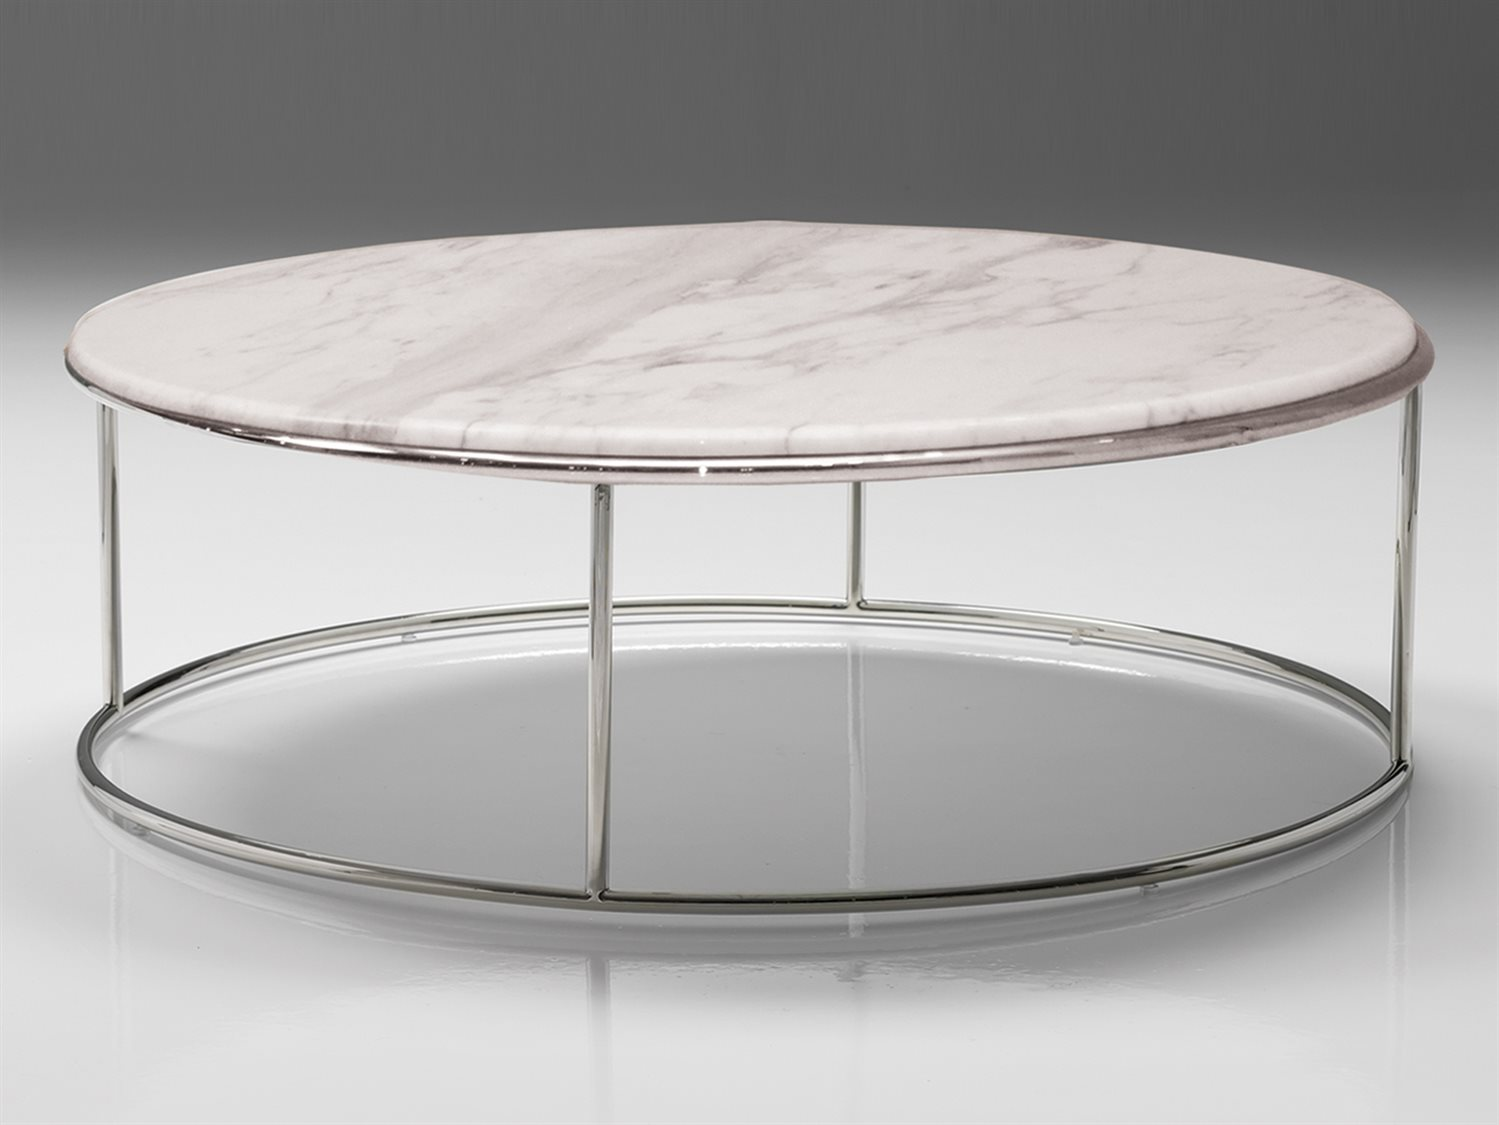 Mobital Elysee 39 Round Marble Coffee Table Round Marble Coffee Tables Marble Or Stone Coffee Table Stone Coffee Tables (Image 3 of 10)